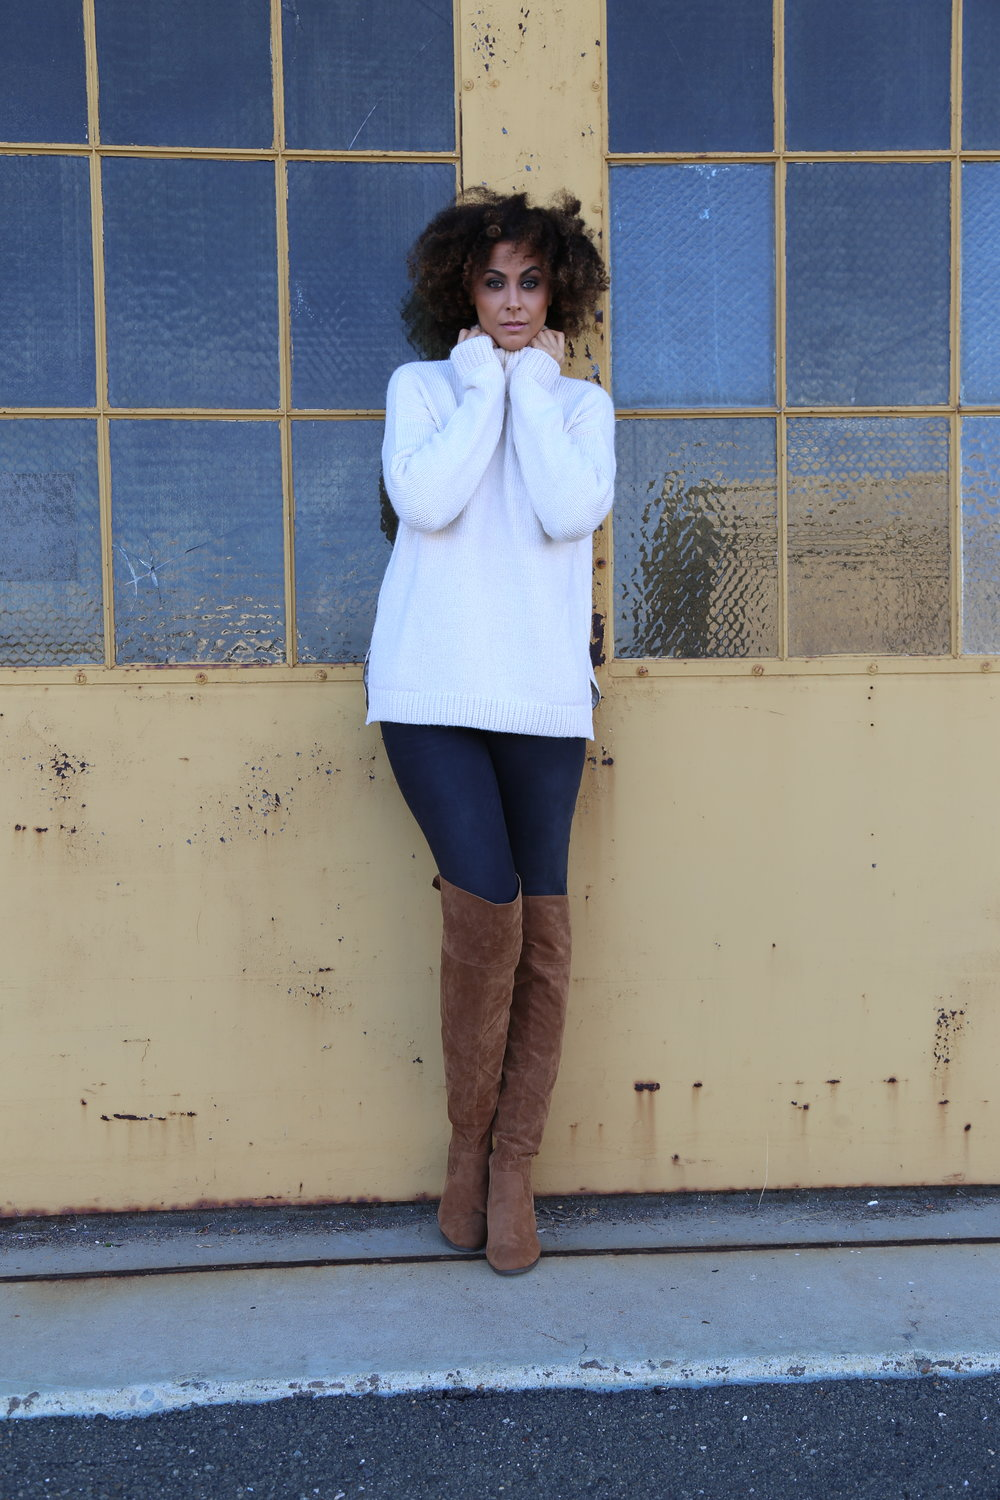 CURATD X LTS Heavy Turtle Neck Knit/CURATD X LTS 7/8 Raw Frayed Hem Jeans/LTS Lexie Over The Knee Boot *All are from Long Tall Sally Photo Credit: LaKeela Smith